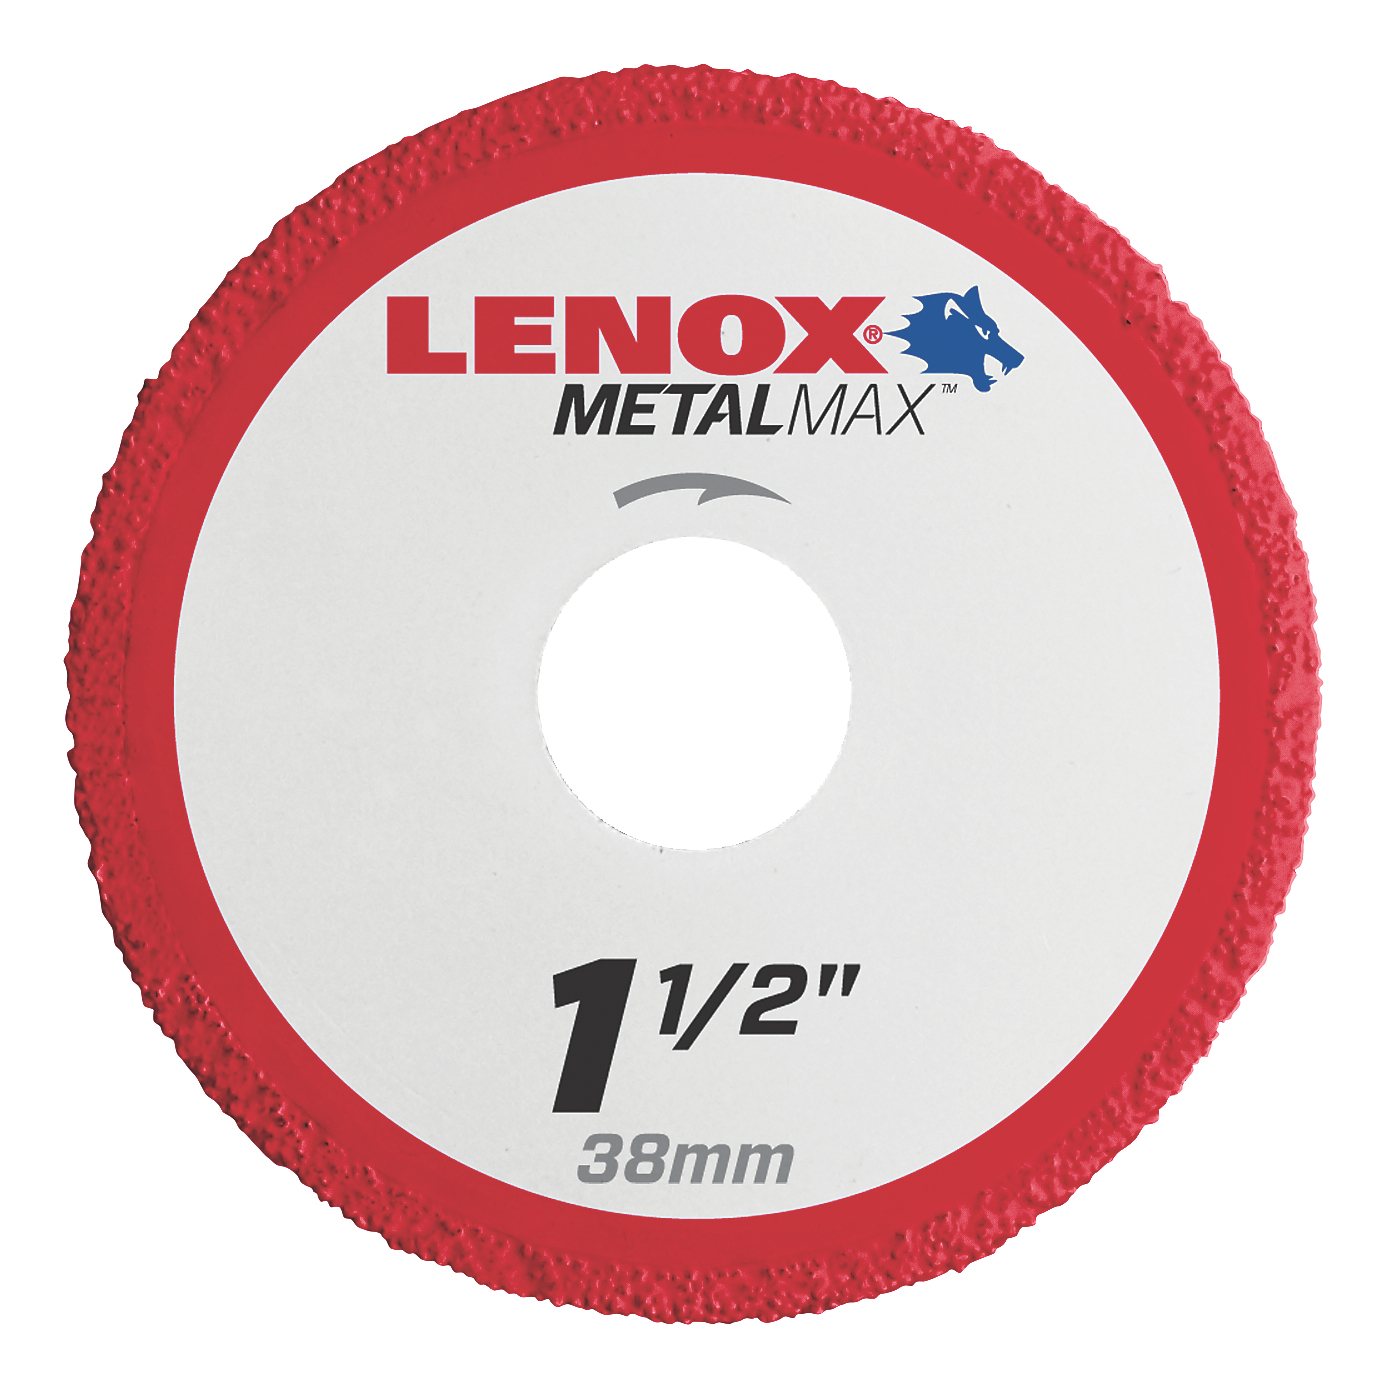 LENOX® TOOLS METALMAX™ 1972914 METALMAX™ Type 1 Cut-Off Wheel, 1-1/2 in Dia x 0.05 in THK, 3/8 in Center Hole, 40/50 Grit, Diamond Abrasive